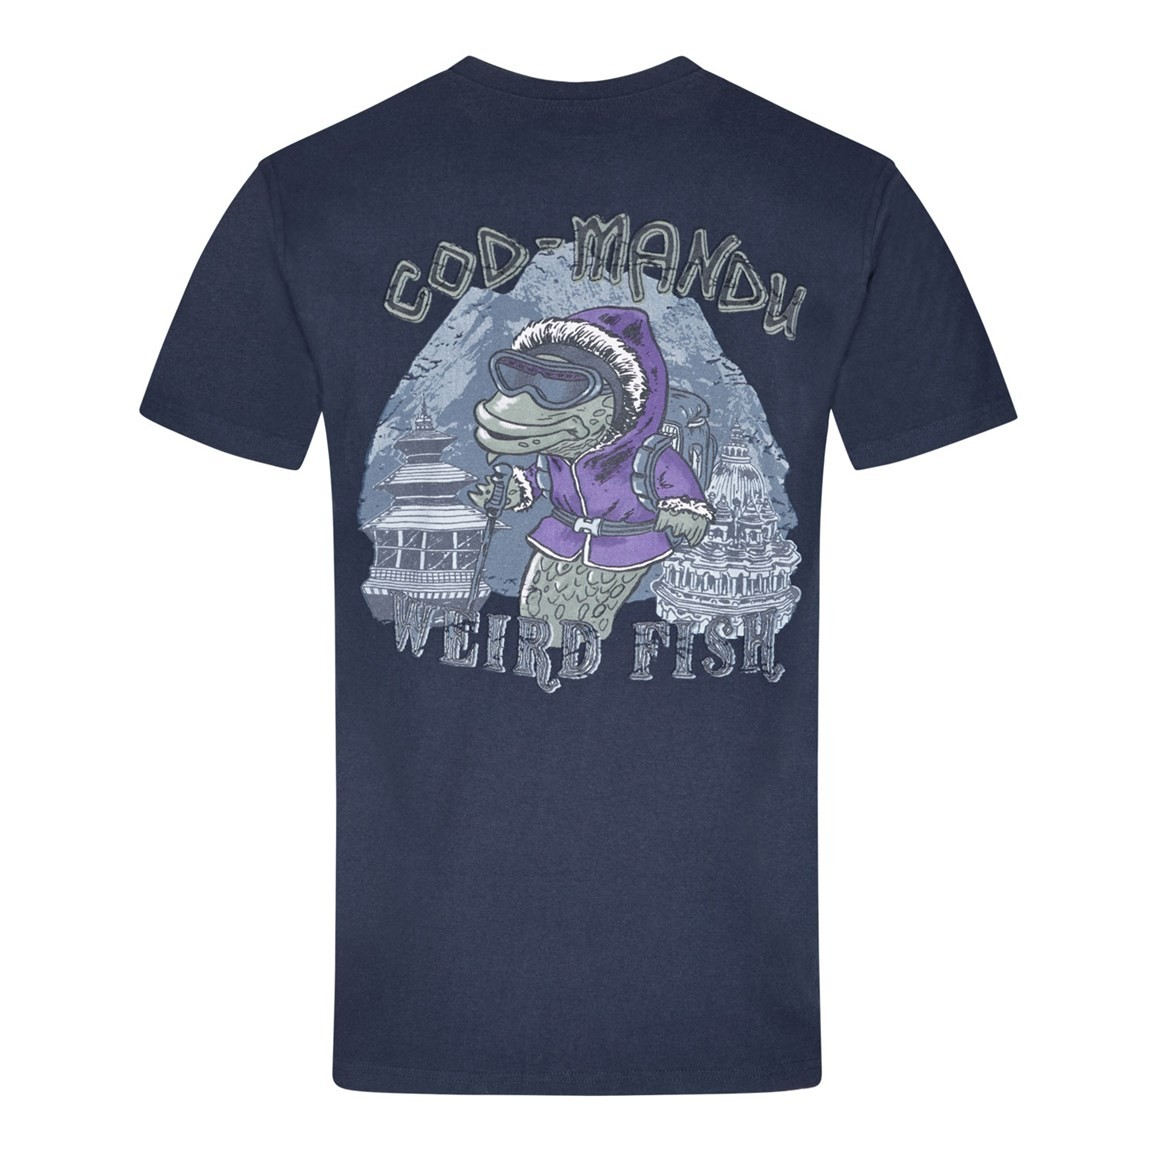 Weird Fish Cod Mandu Printed Artist T-Shirt Dark Navy